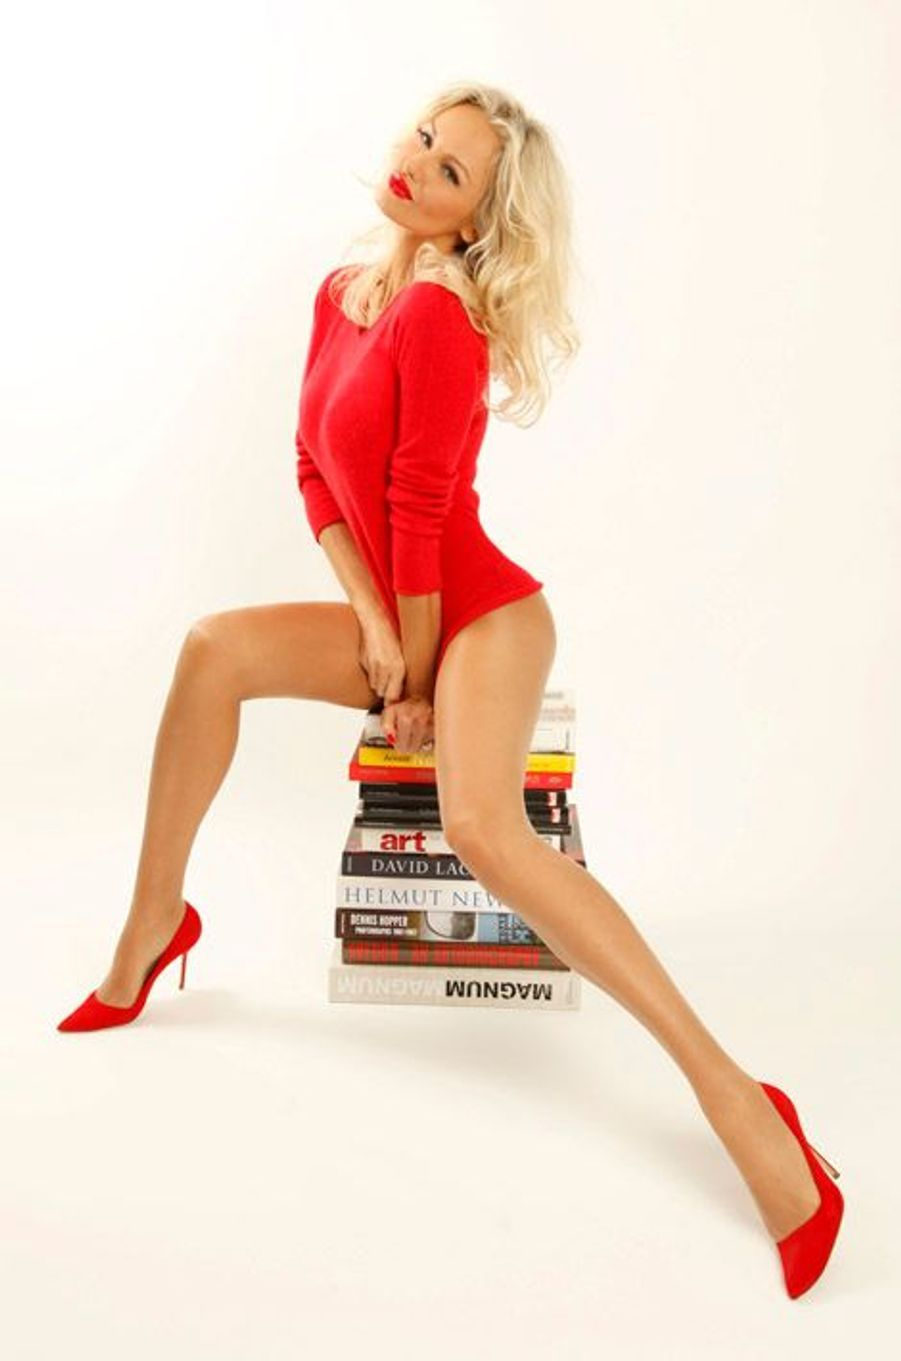 Le top model Adriana KAREMBEU joue les pin-up fifties, assise sur des livres de photos et d'art. Photo studio.